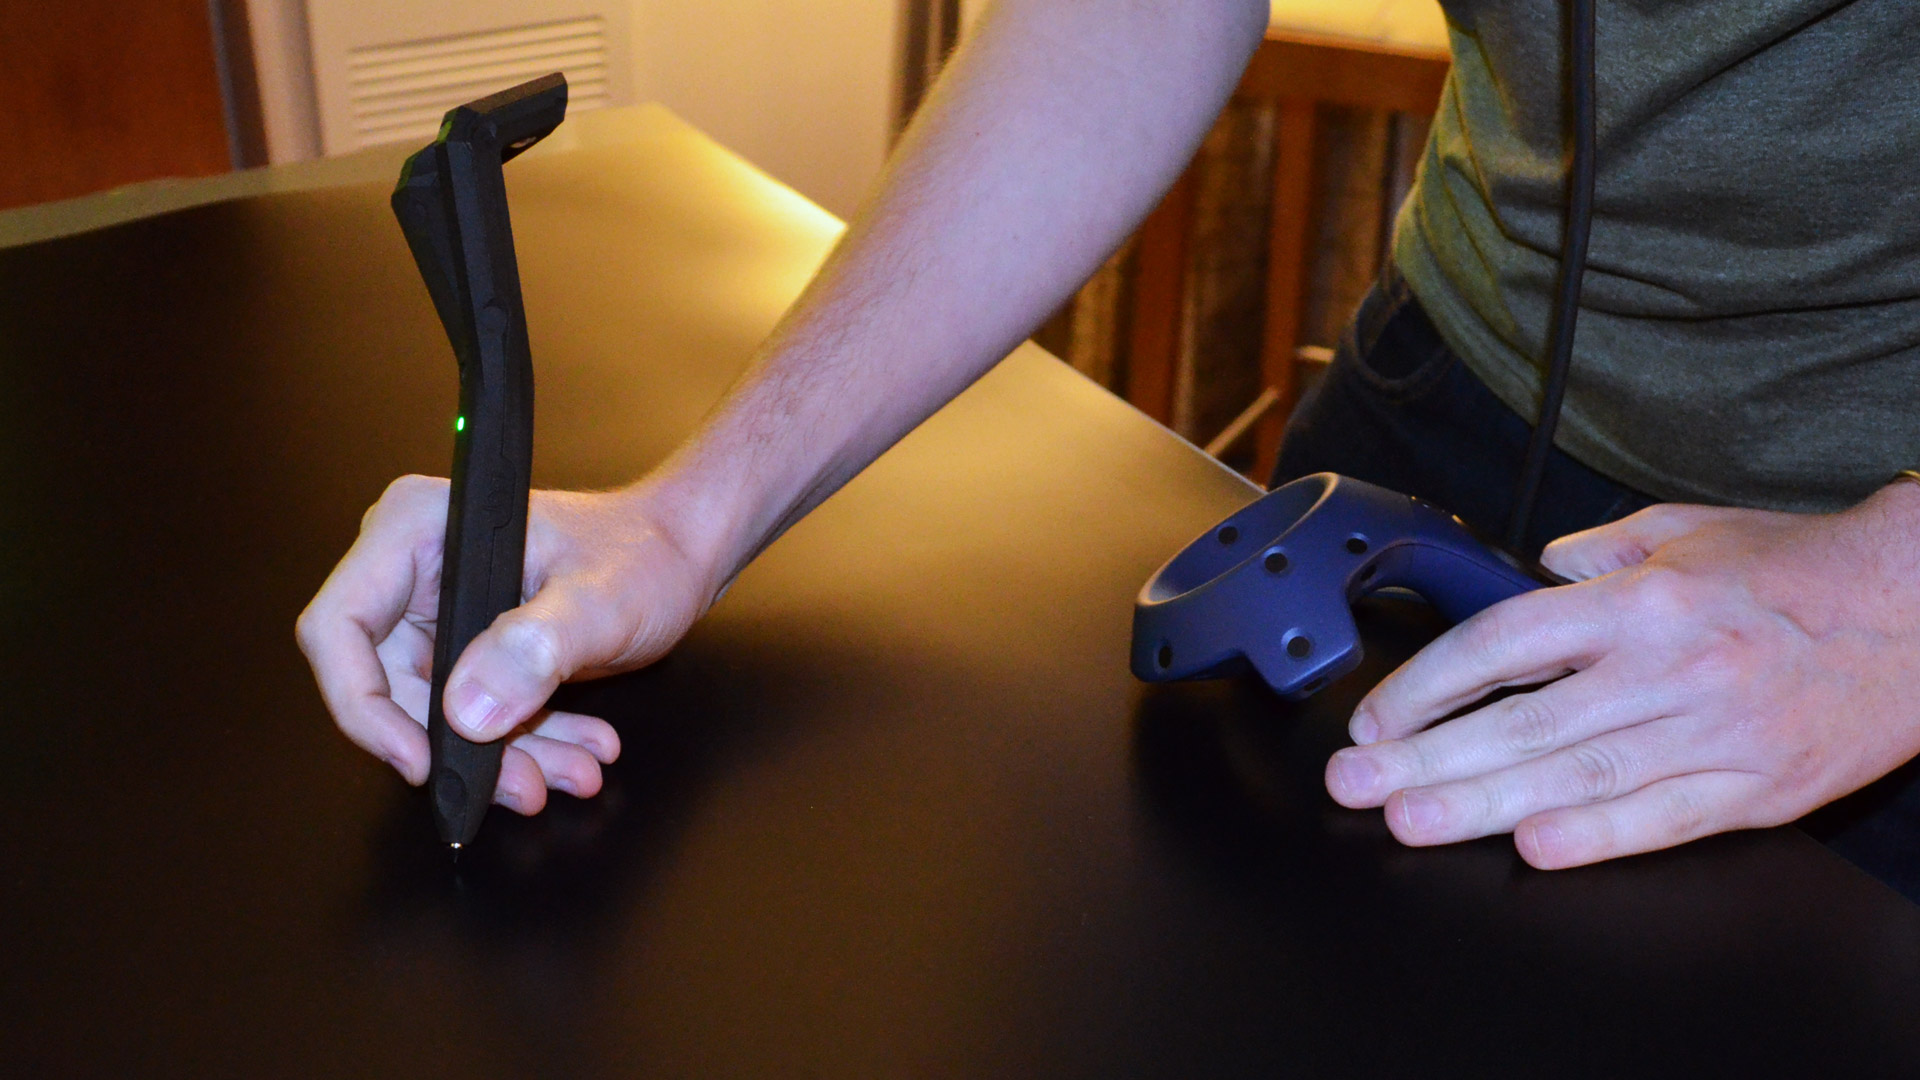 Hands-on: Logitech is Building the VR Stylus That Needs to Exist